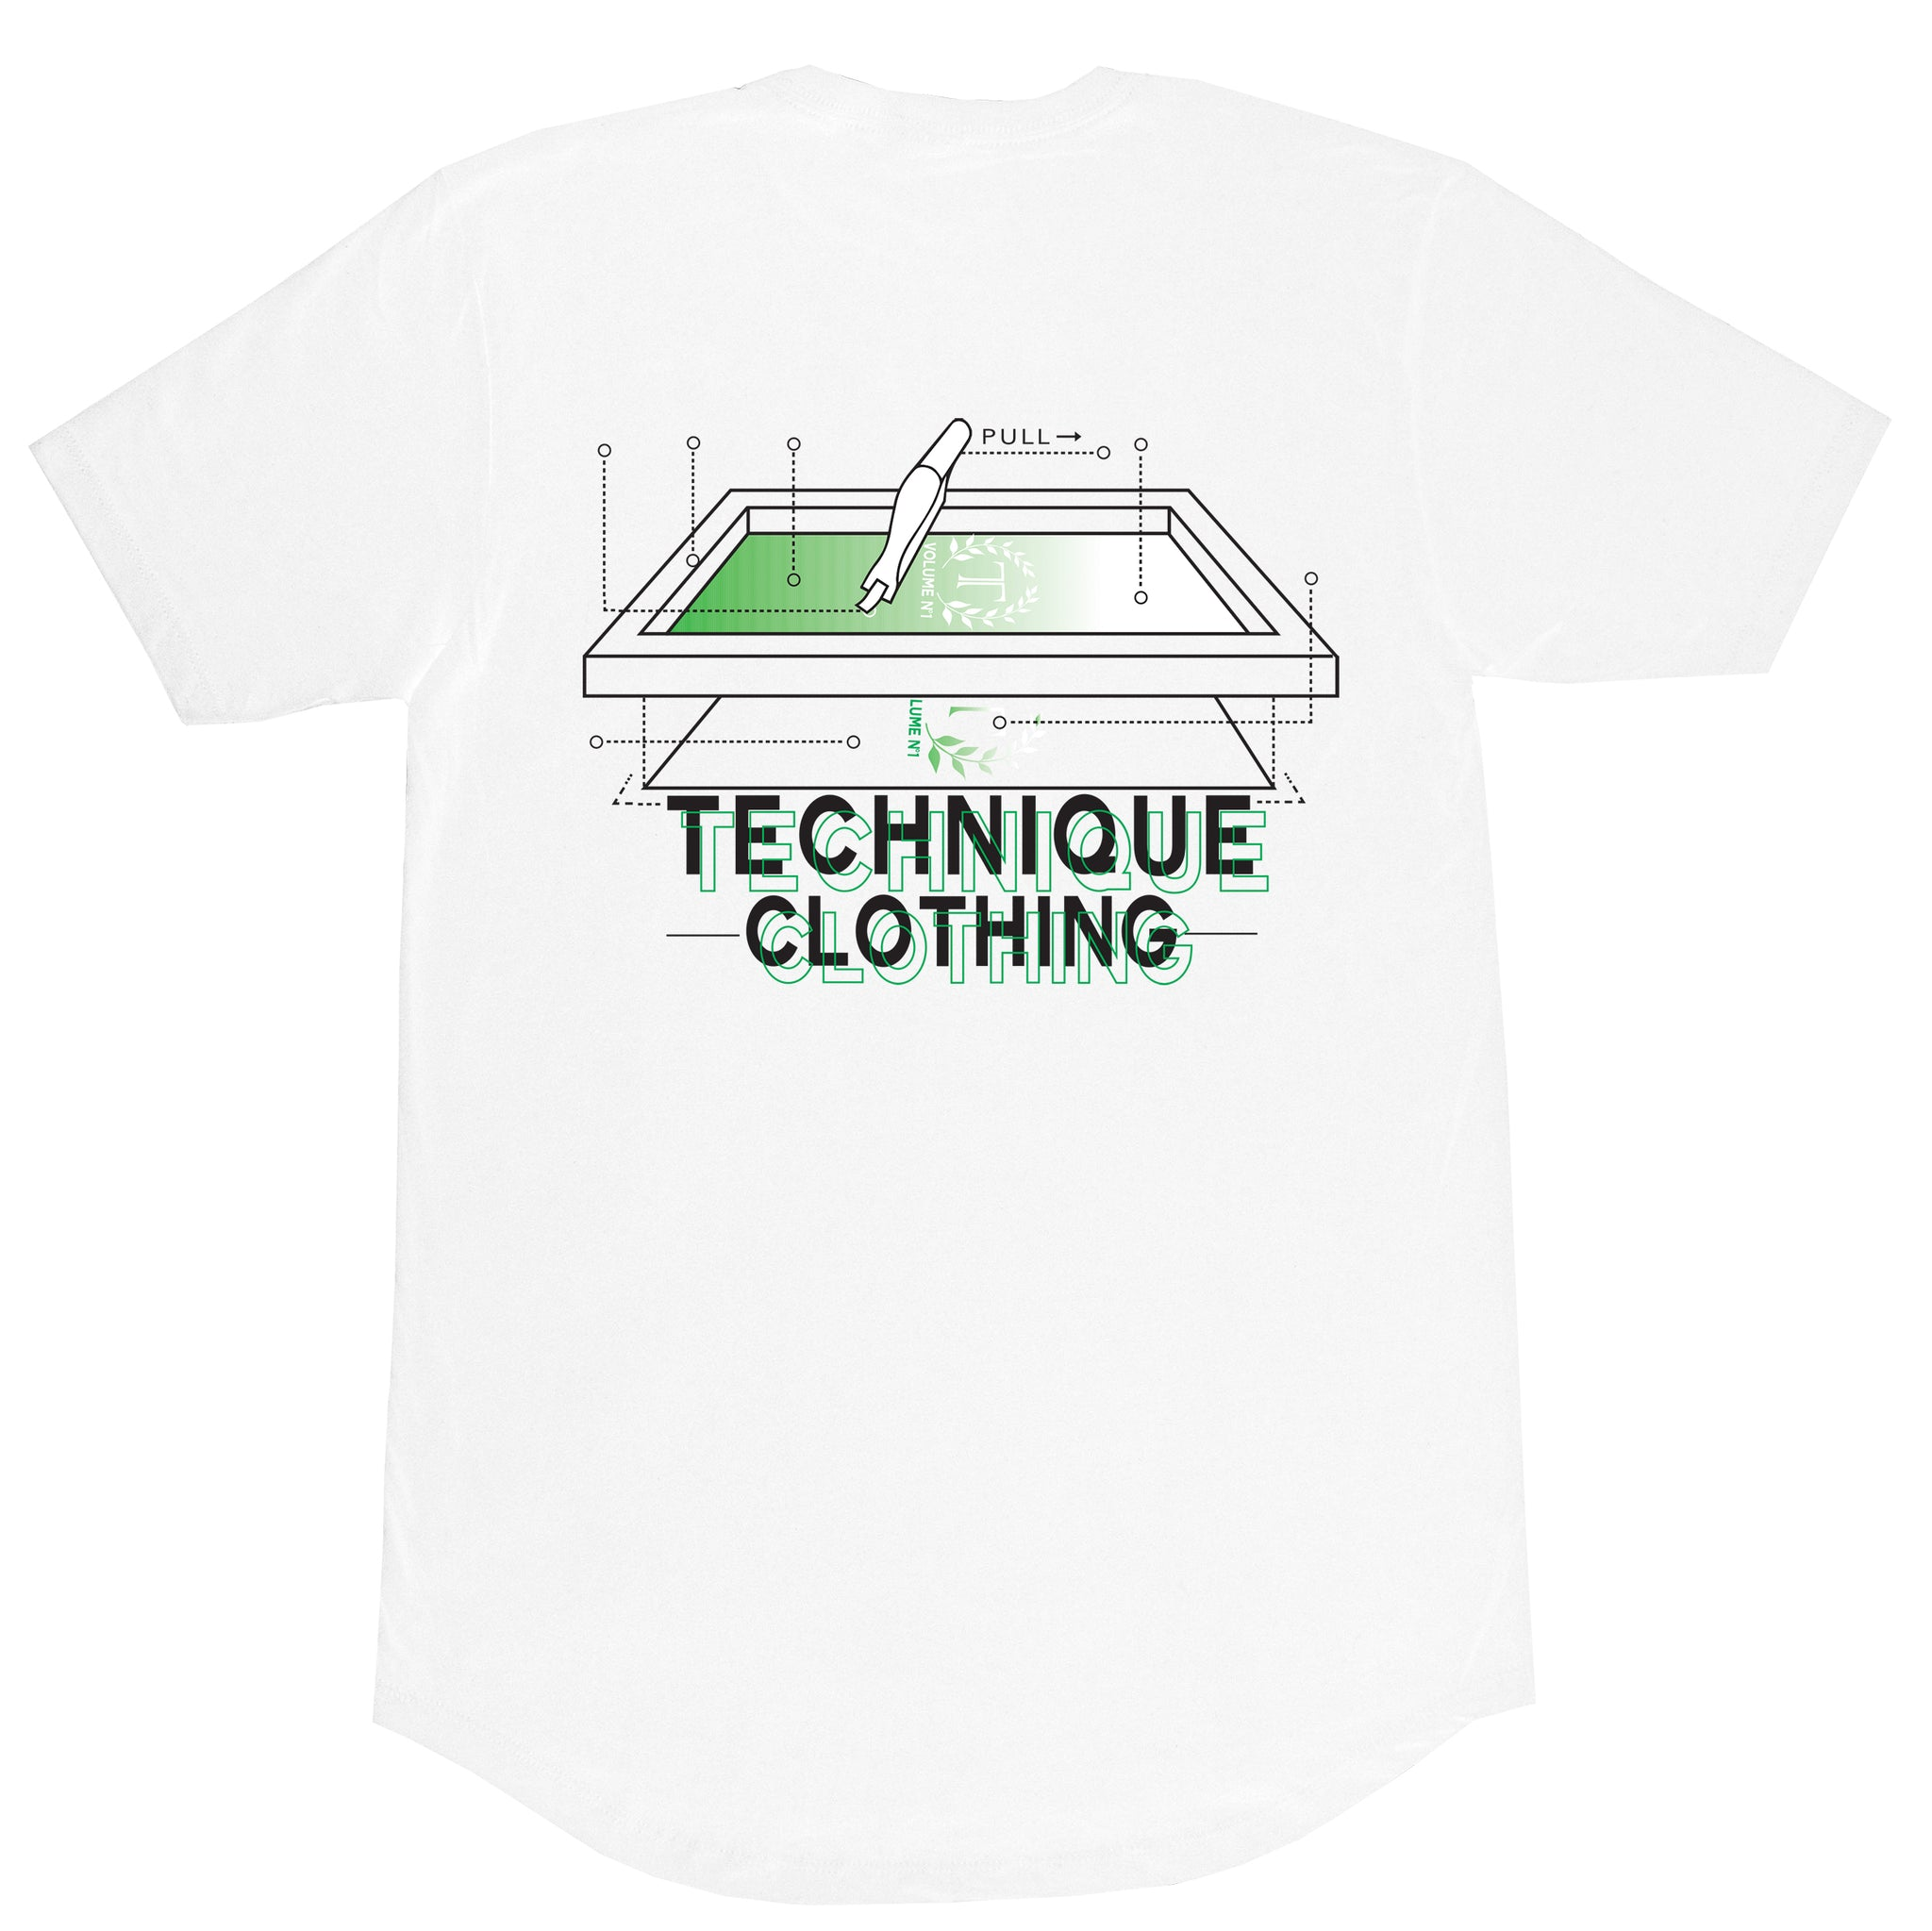 ENVIRONMENTAL TEE - Technique Clothing